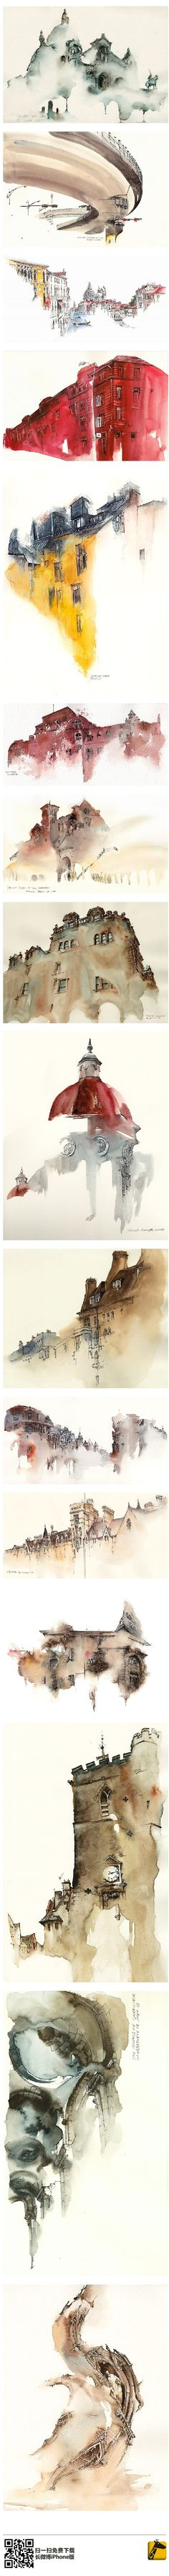 These are beautiful. Like remembering places in a dream state. #watercolor jd